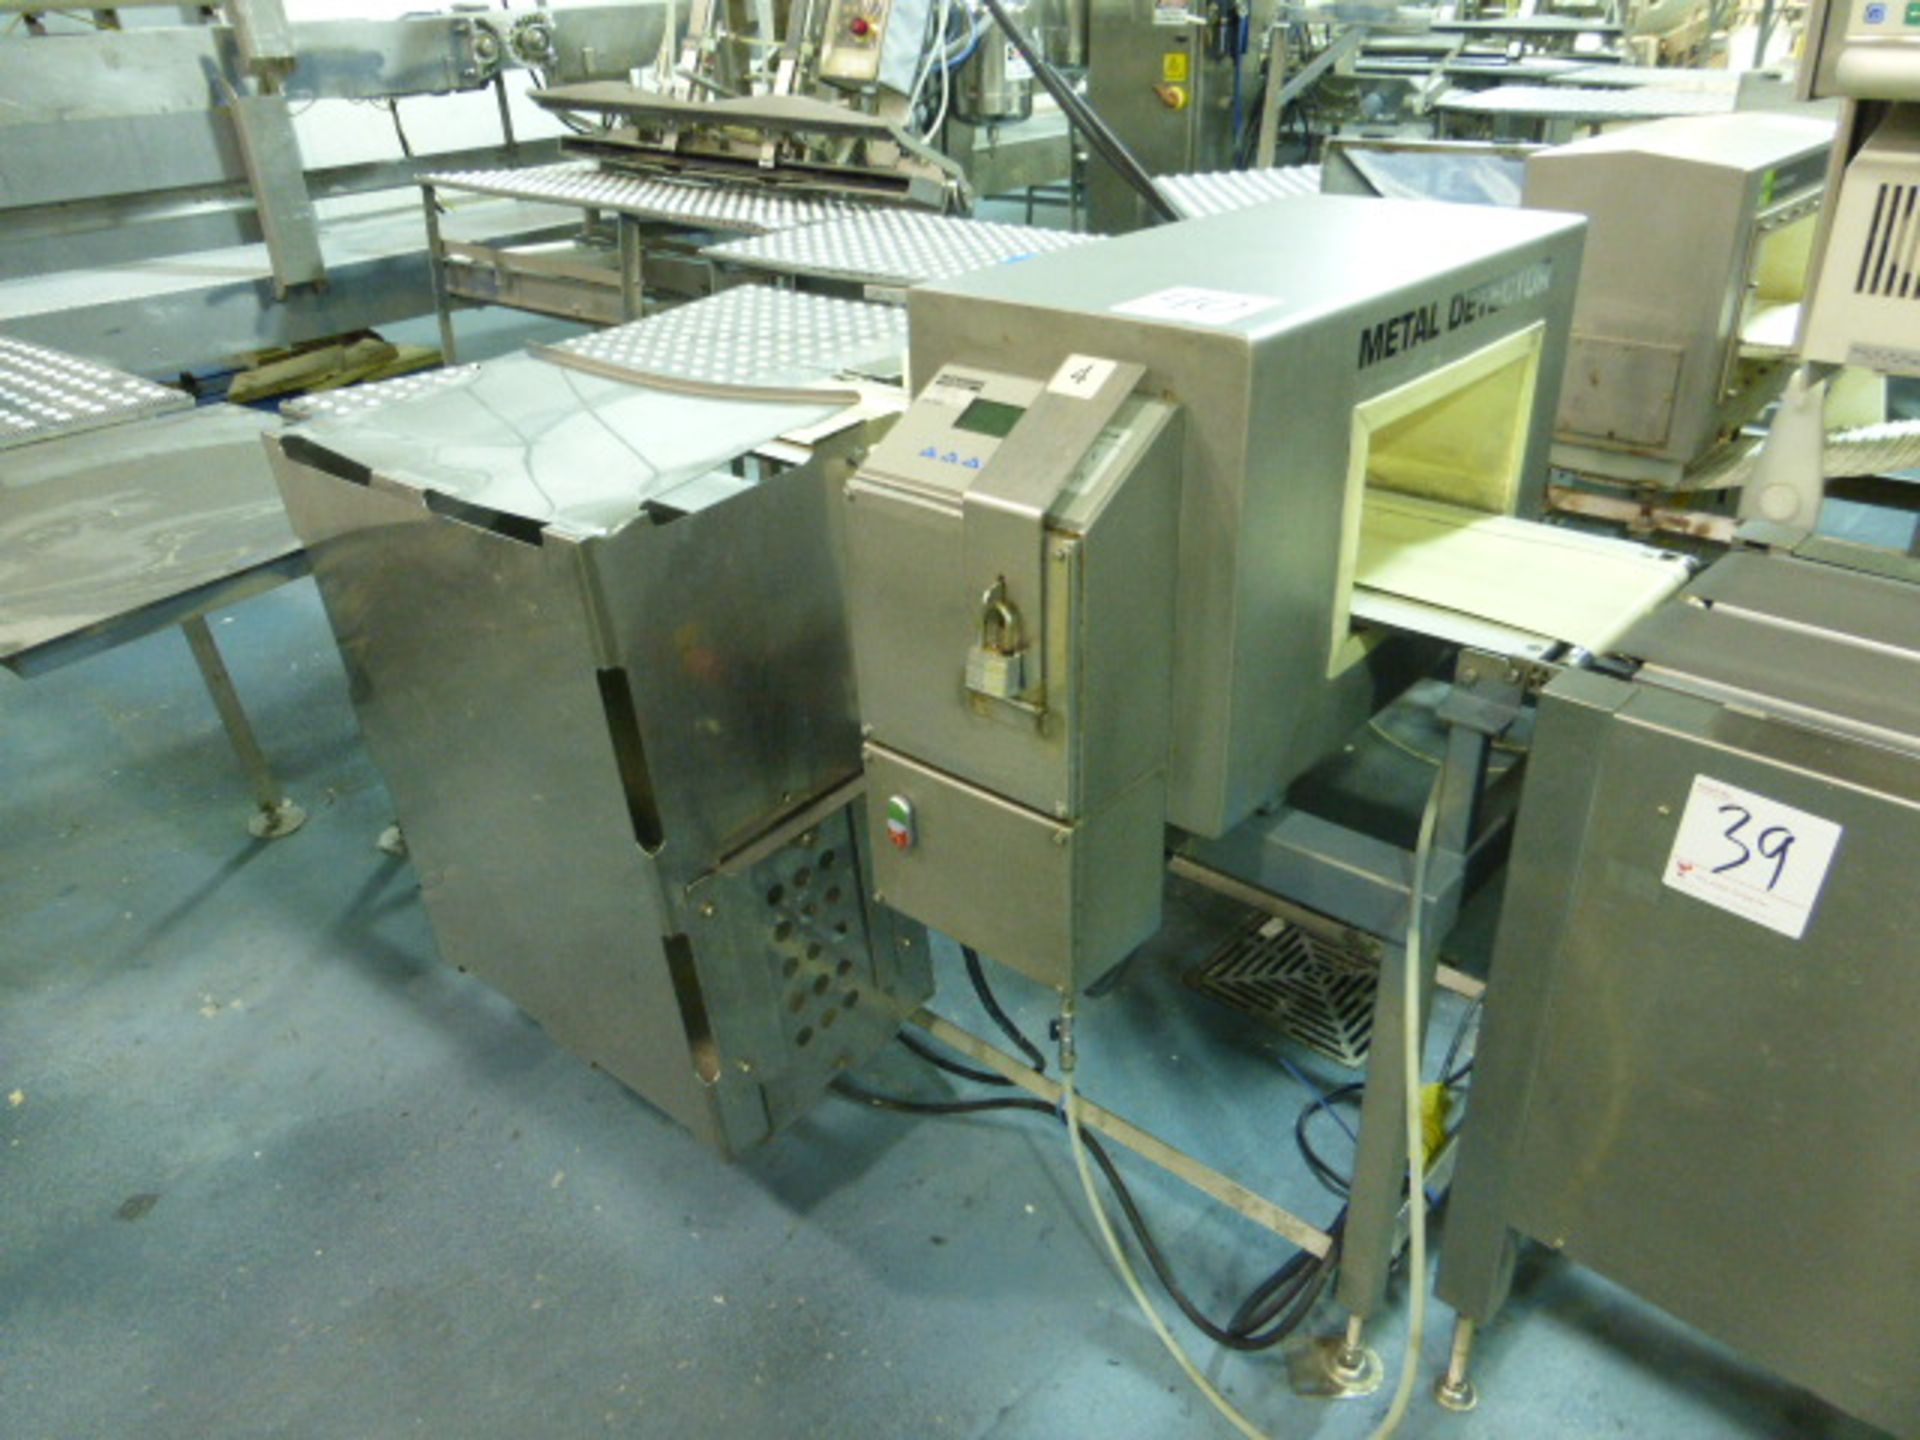 Lot 39 - Bizerba in-line check-weigher system (SLAVE2) w/ Bizerba GS label printer, ser. no. 1960596 and